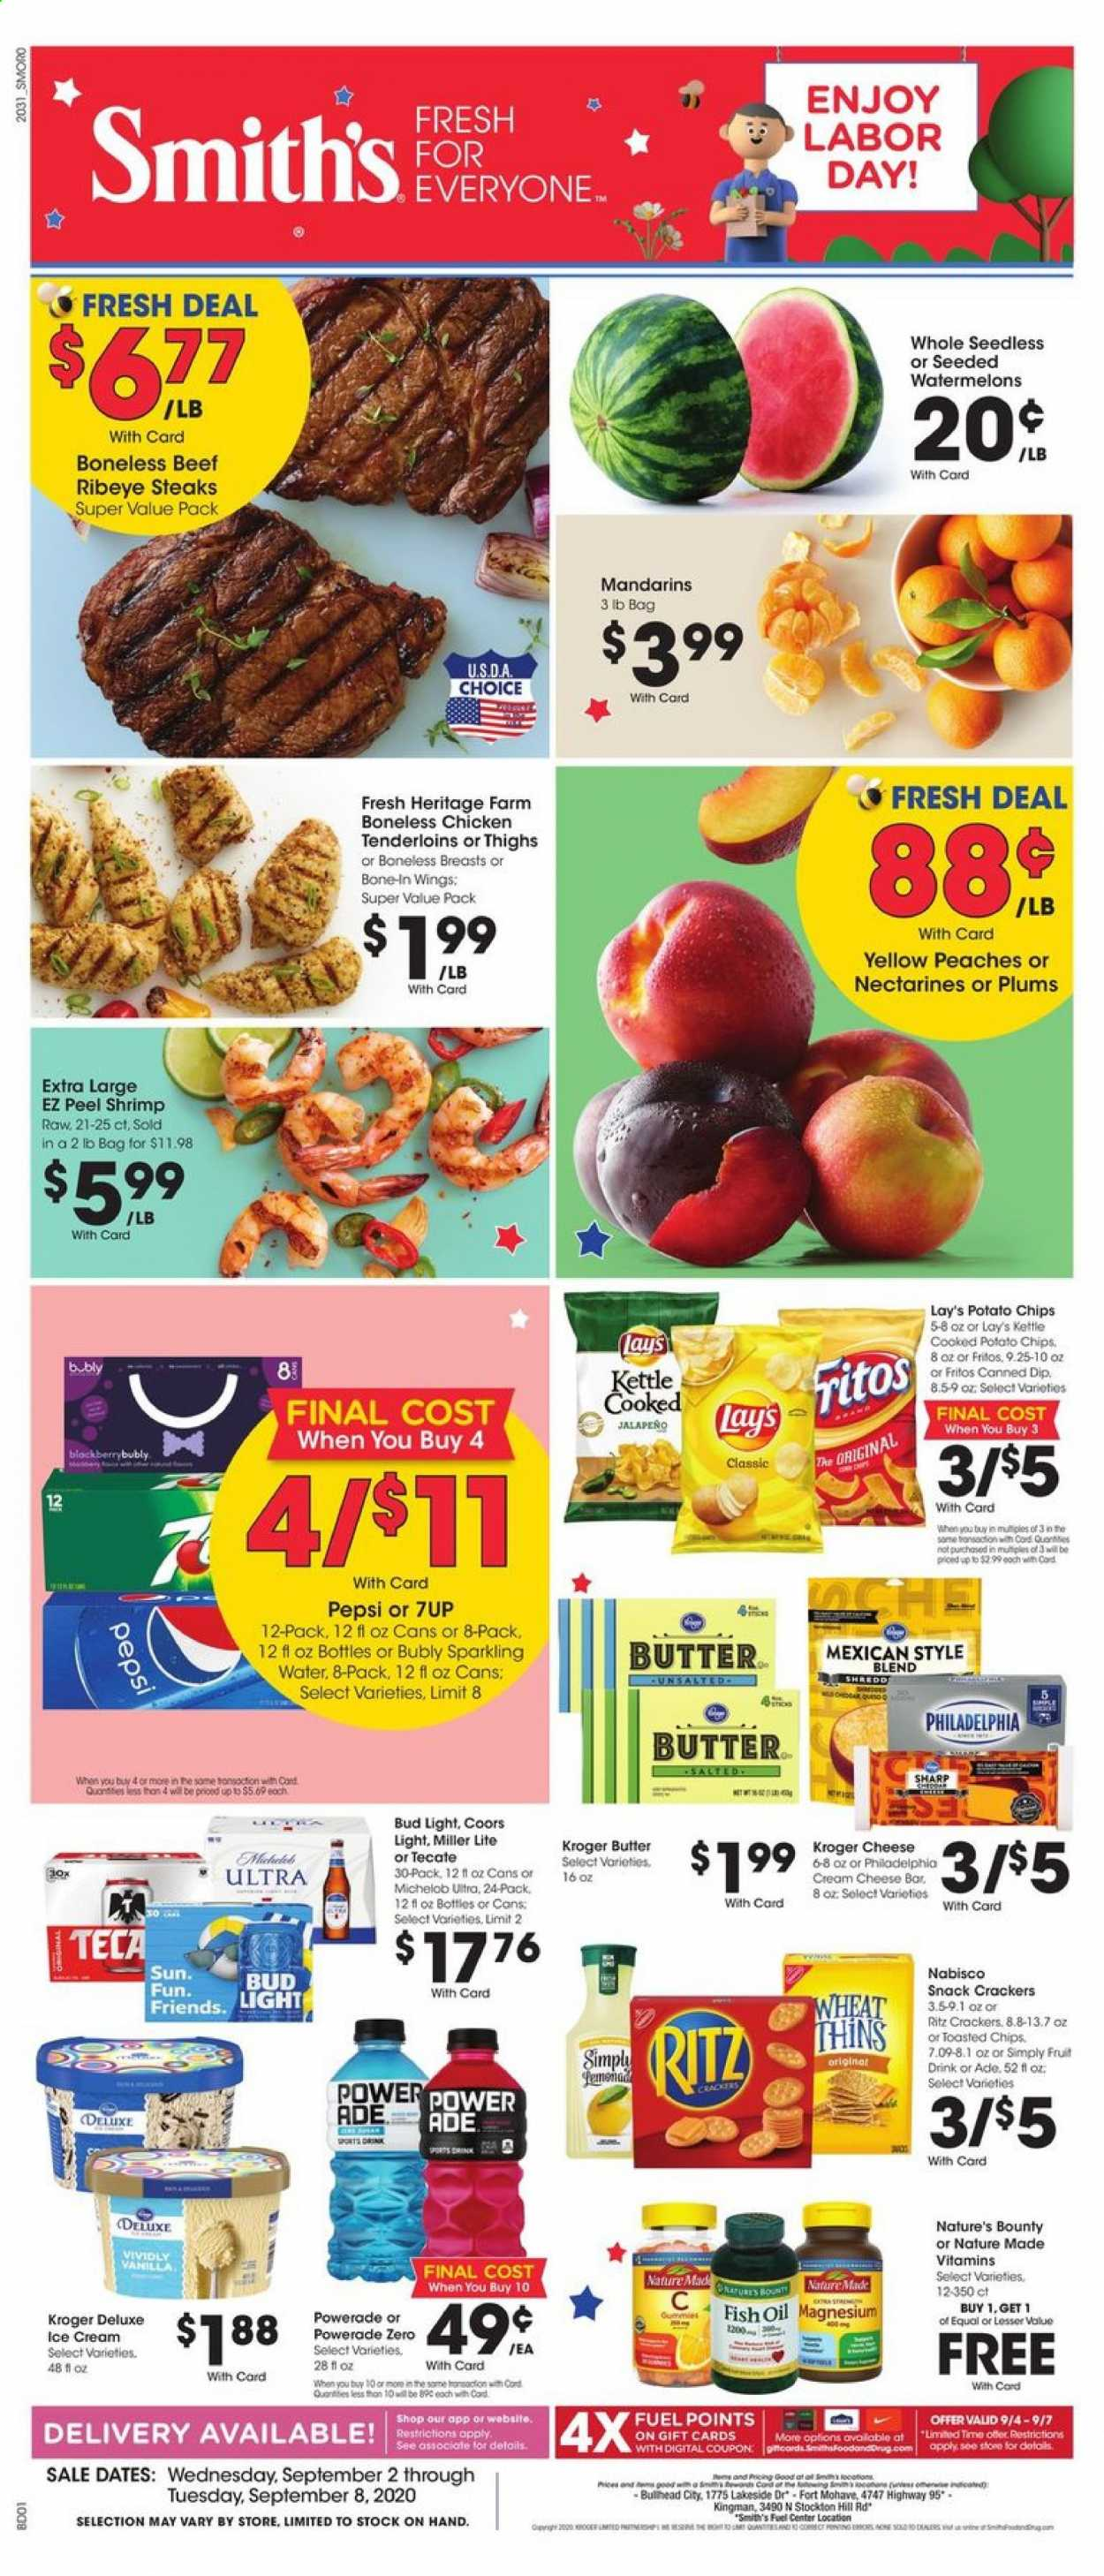 Smith's Flyer - 09.02.2020 - 09.08.2020 - Sales products - bag, beef meat, butter, crackers, cream cheese, dates, fish oil, fritos, fuel, magnesium, miller lite, nature made, nature's bounty, nectarines, sharp, shrimp, ice cream, philadelphia, plums, potato chips, powerade, chicken, peaches, pepsi, chips, cheese, snack, sparkling water, bud light, lay's, ritz, fruit drink, bounty, drink, wings, miller, coors, michelob, jalapeno, fish, shrimps, kettle, peache. Page 1.